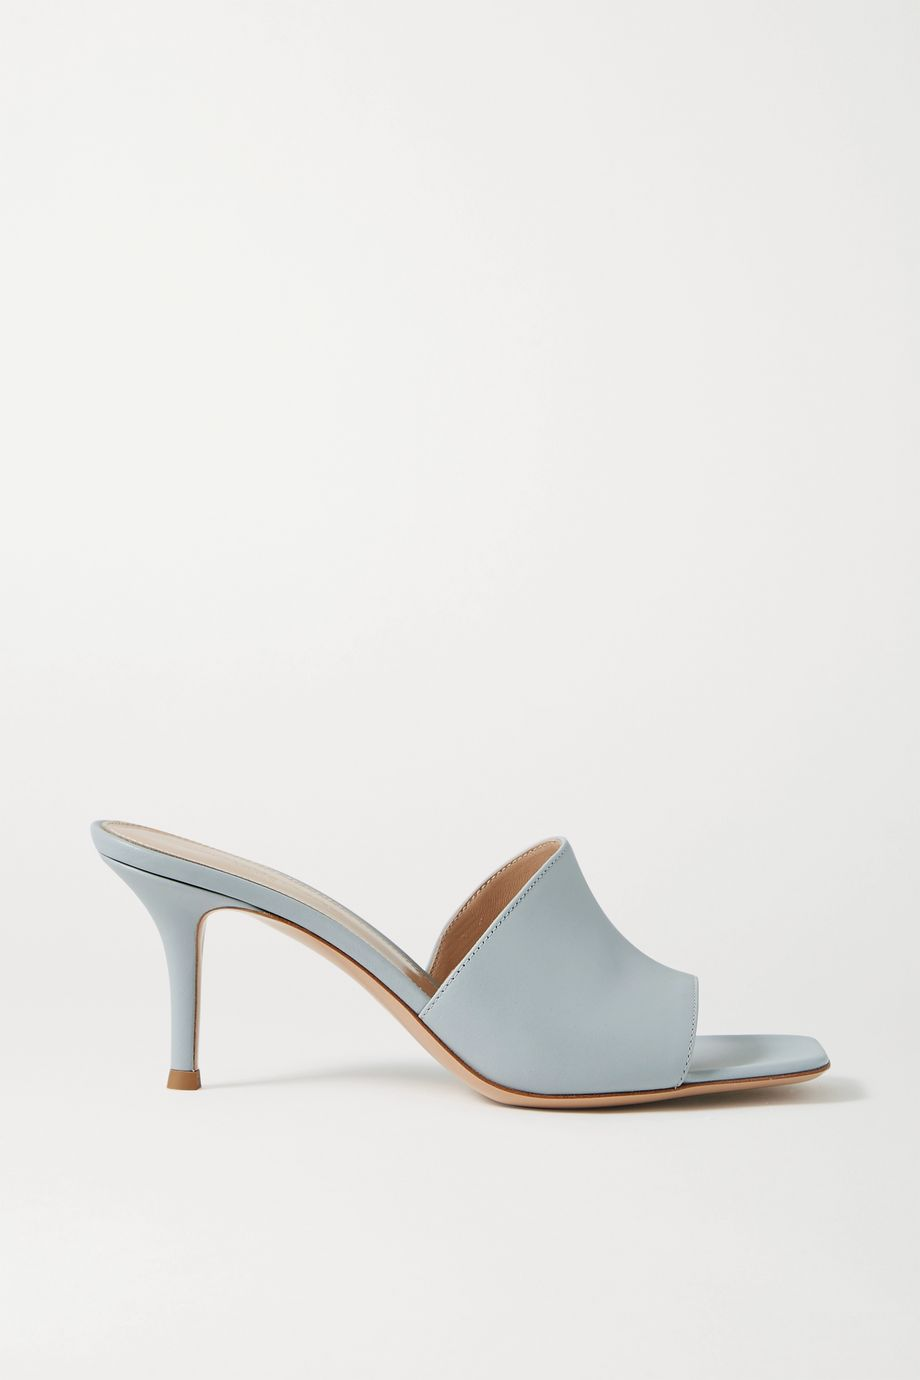 Gianvito Rossi 70 leather mules